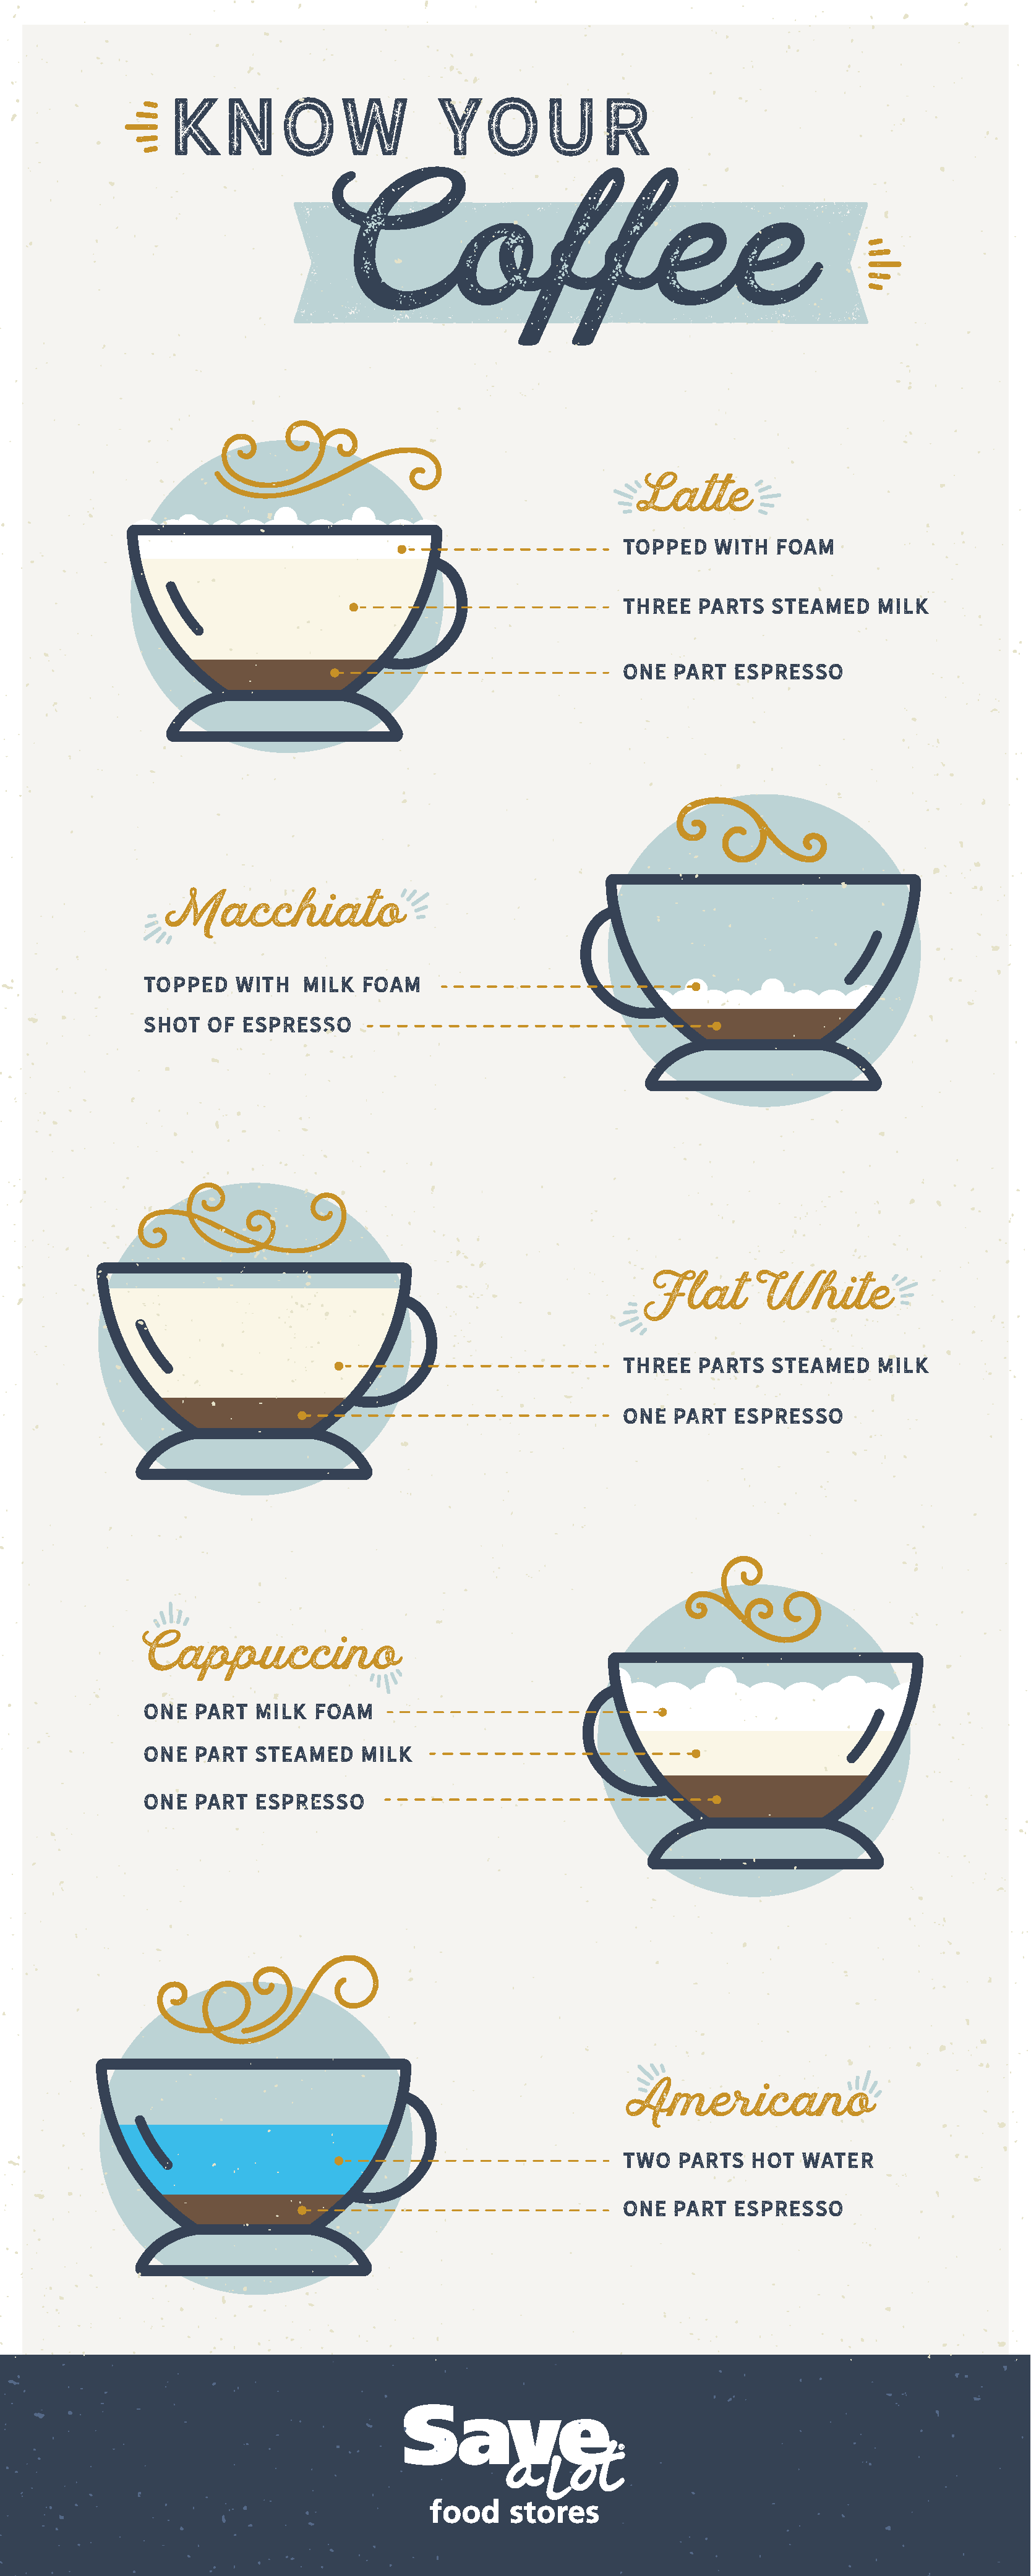 d9c20f1f26c Know Your Coffee | Coffee Types | Coffee Help | Coffee Graphic | Different  Types | Latte | Macchiato | Flat White | Cappuccino | Americano | # ...